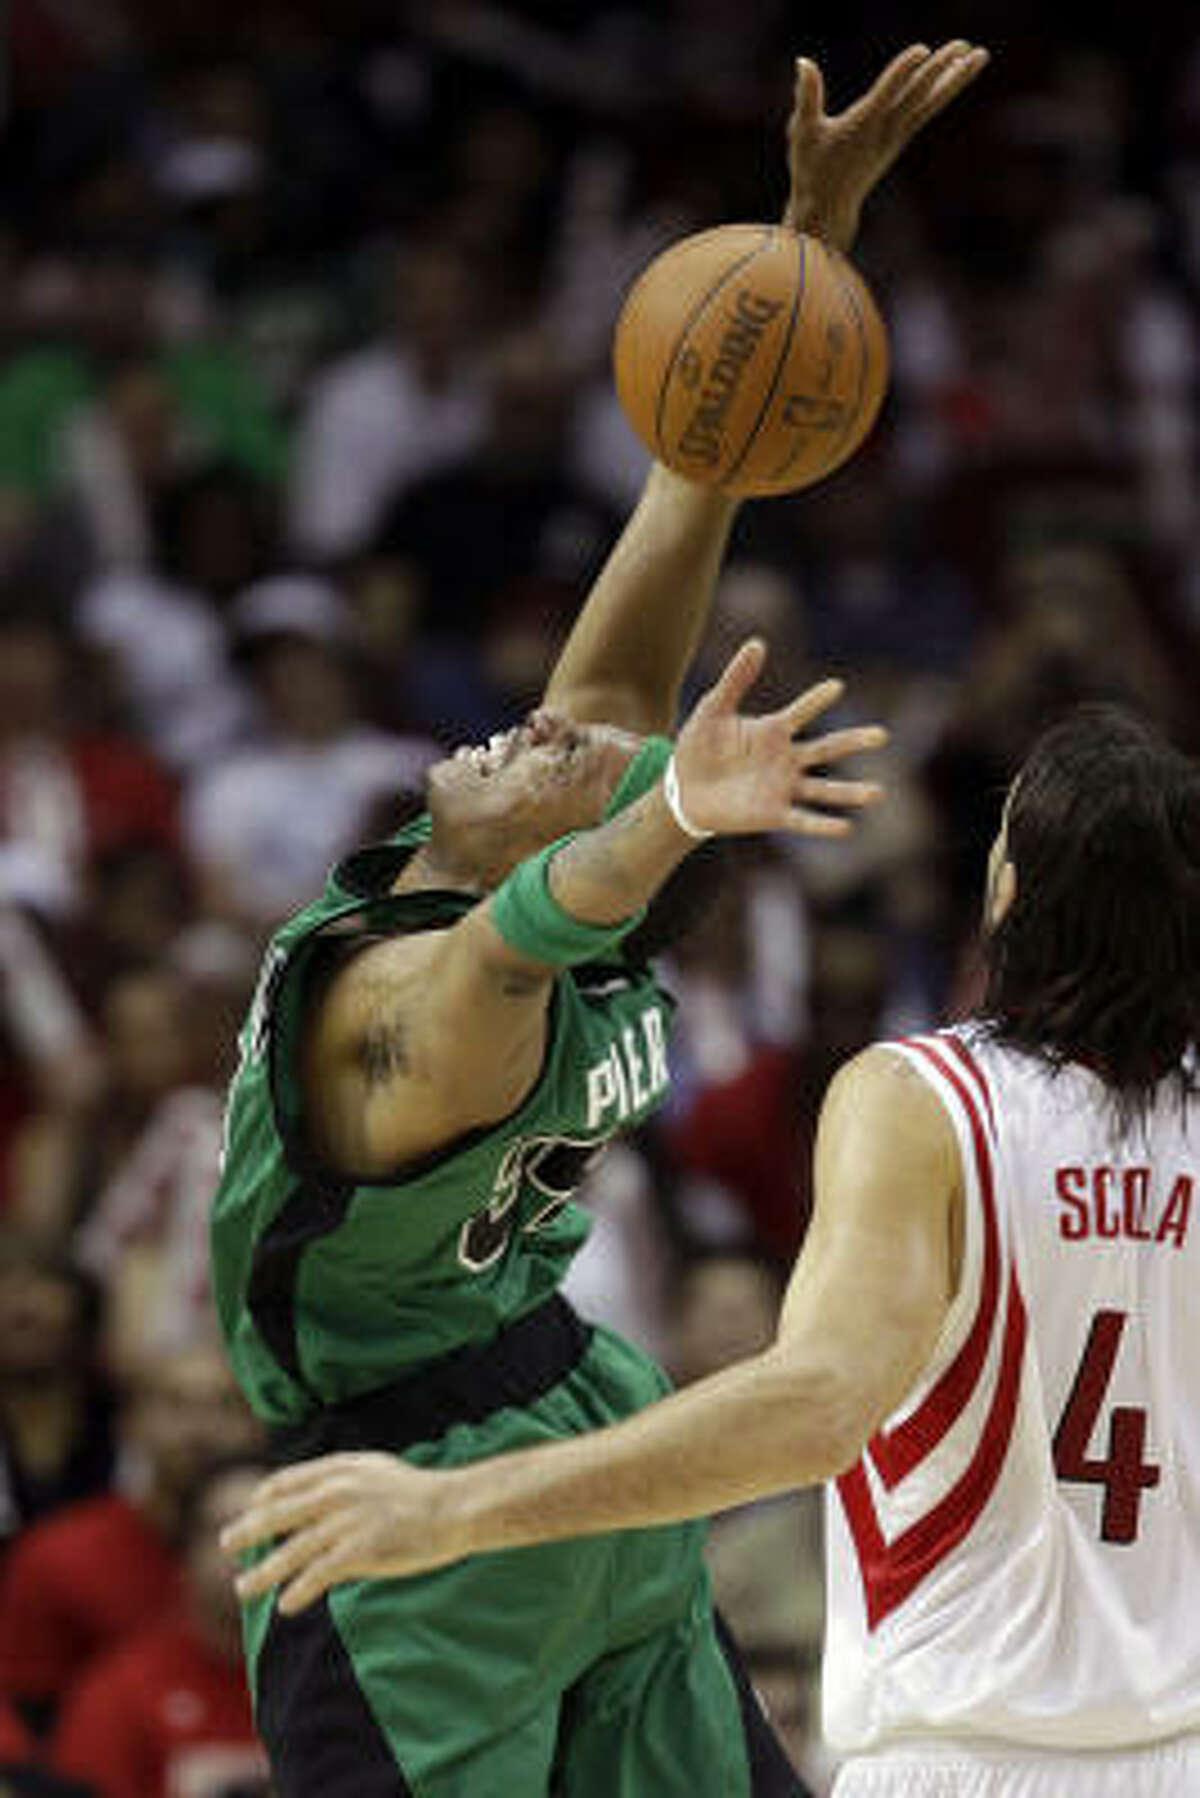 Celtics guard Paul Pierce loses the ball after being fouled by Rockets forward Luis Scola during the fourth quarter.